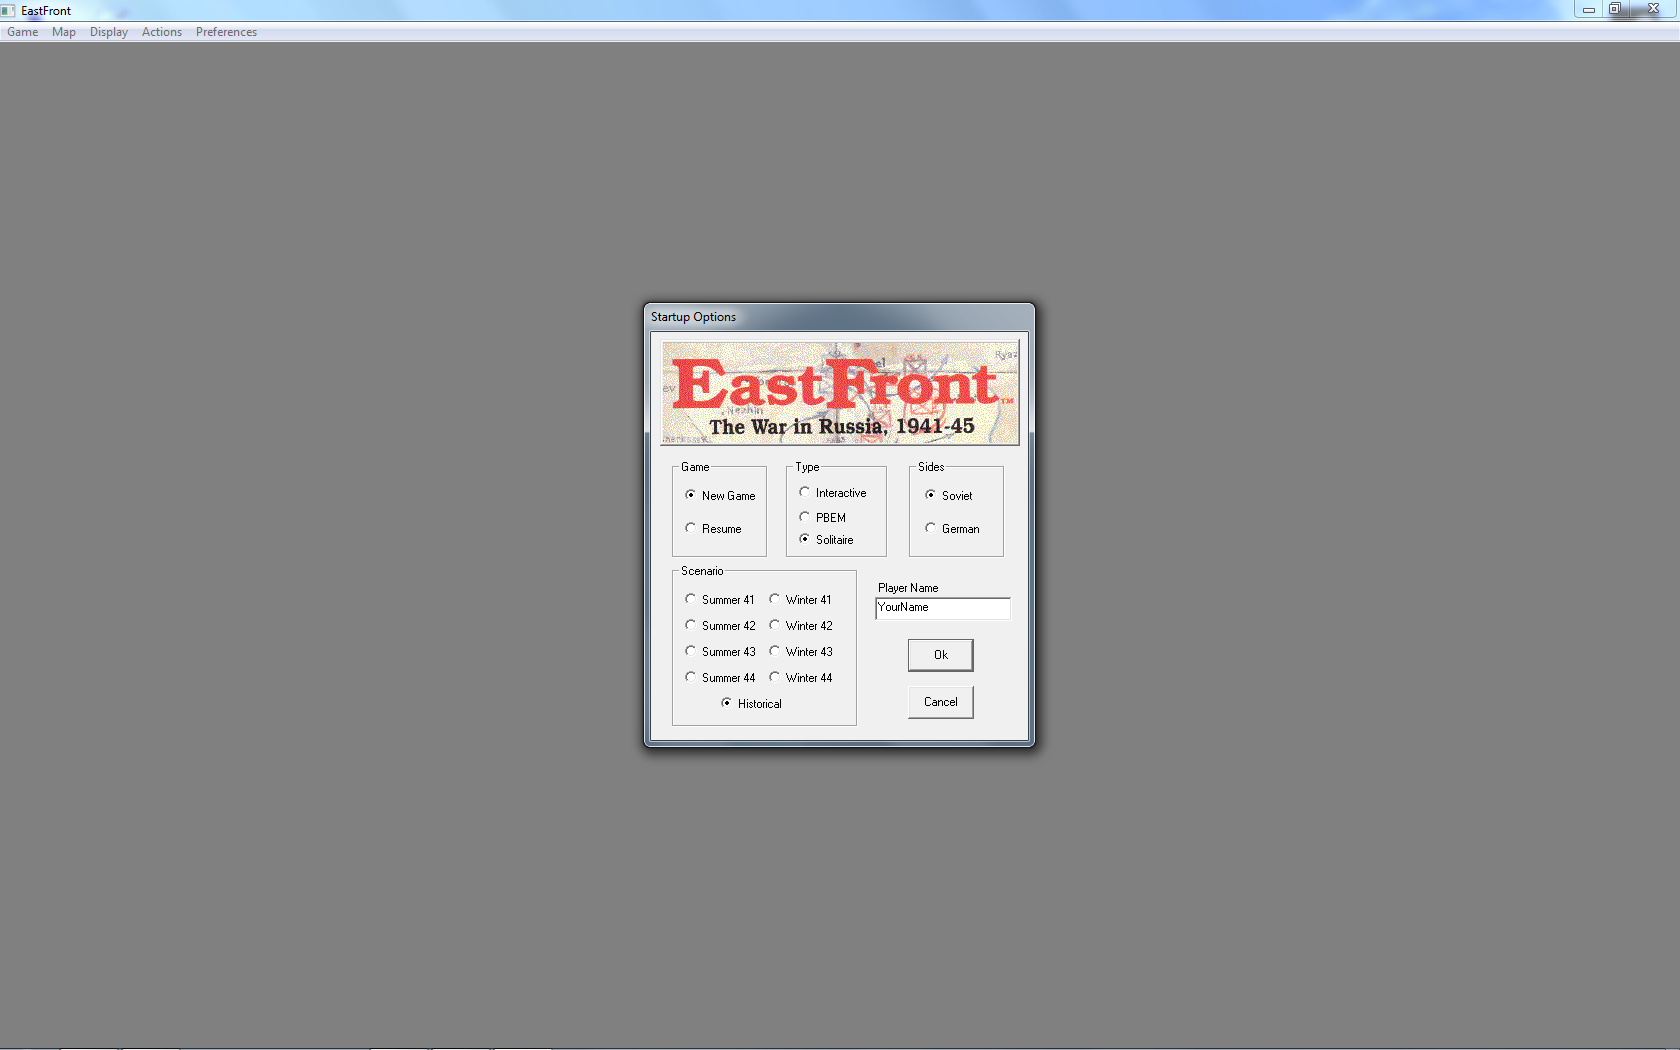 Computer EastFront Windows Startup options